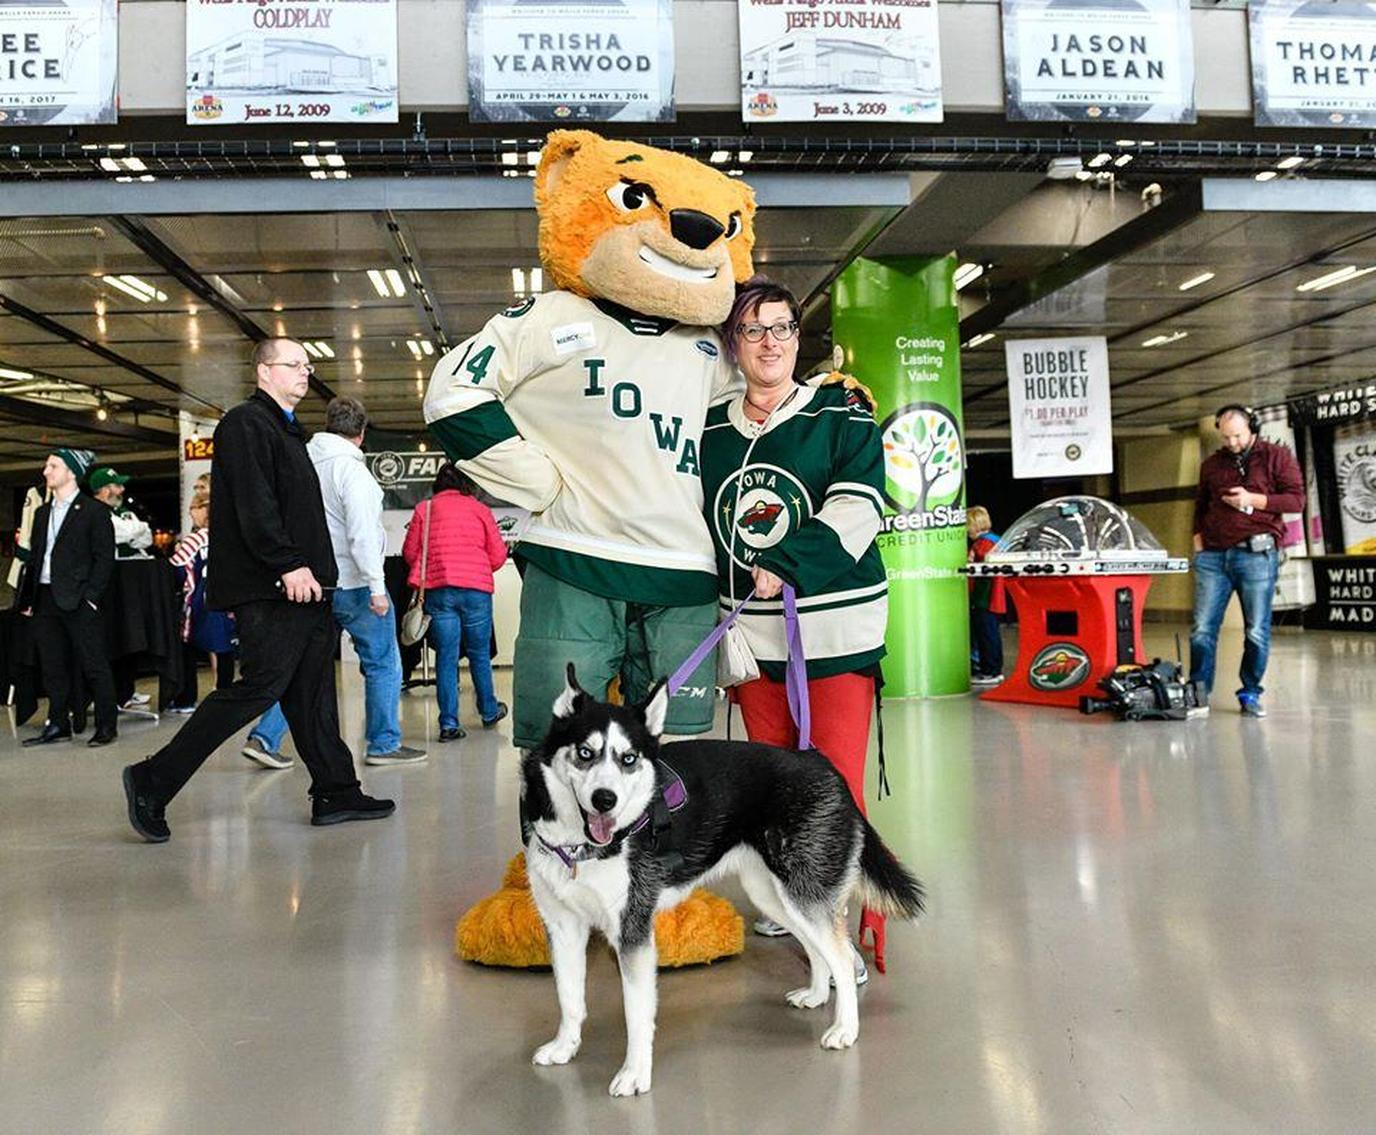 A Woman and Her Dog Poses With a Mascot at a Dog-Friendly Hockey Game in Iowa.